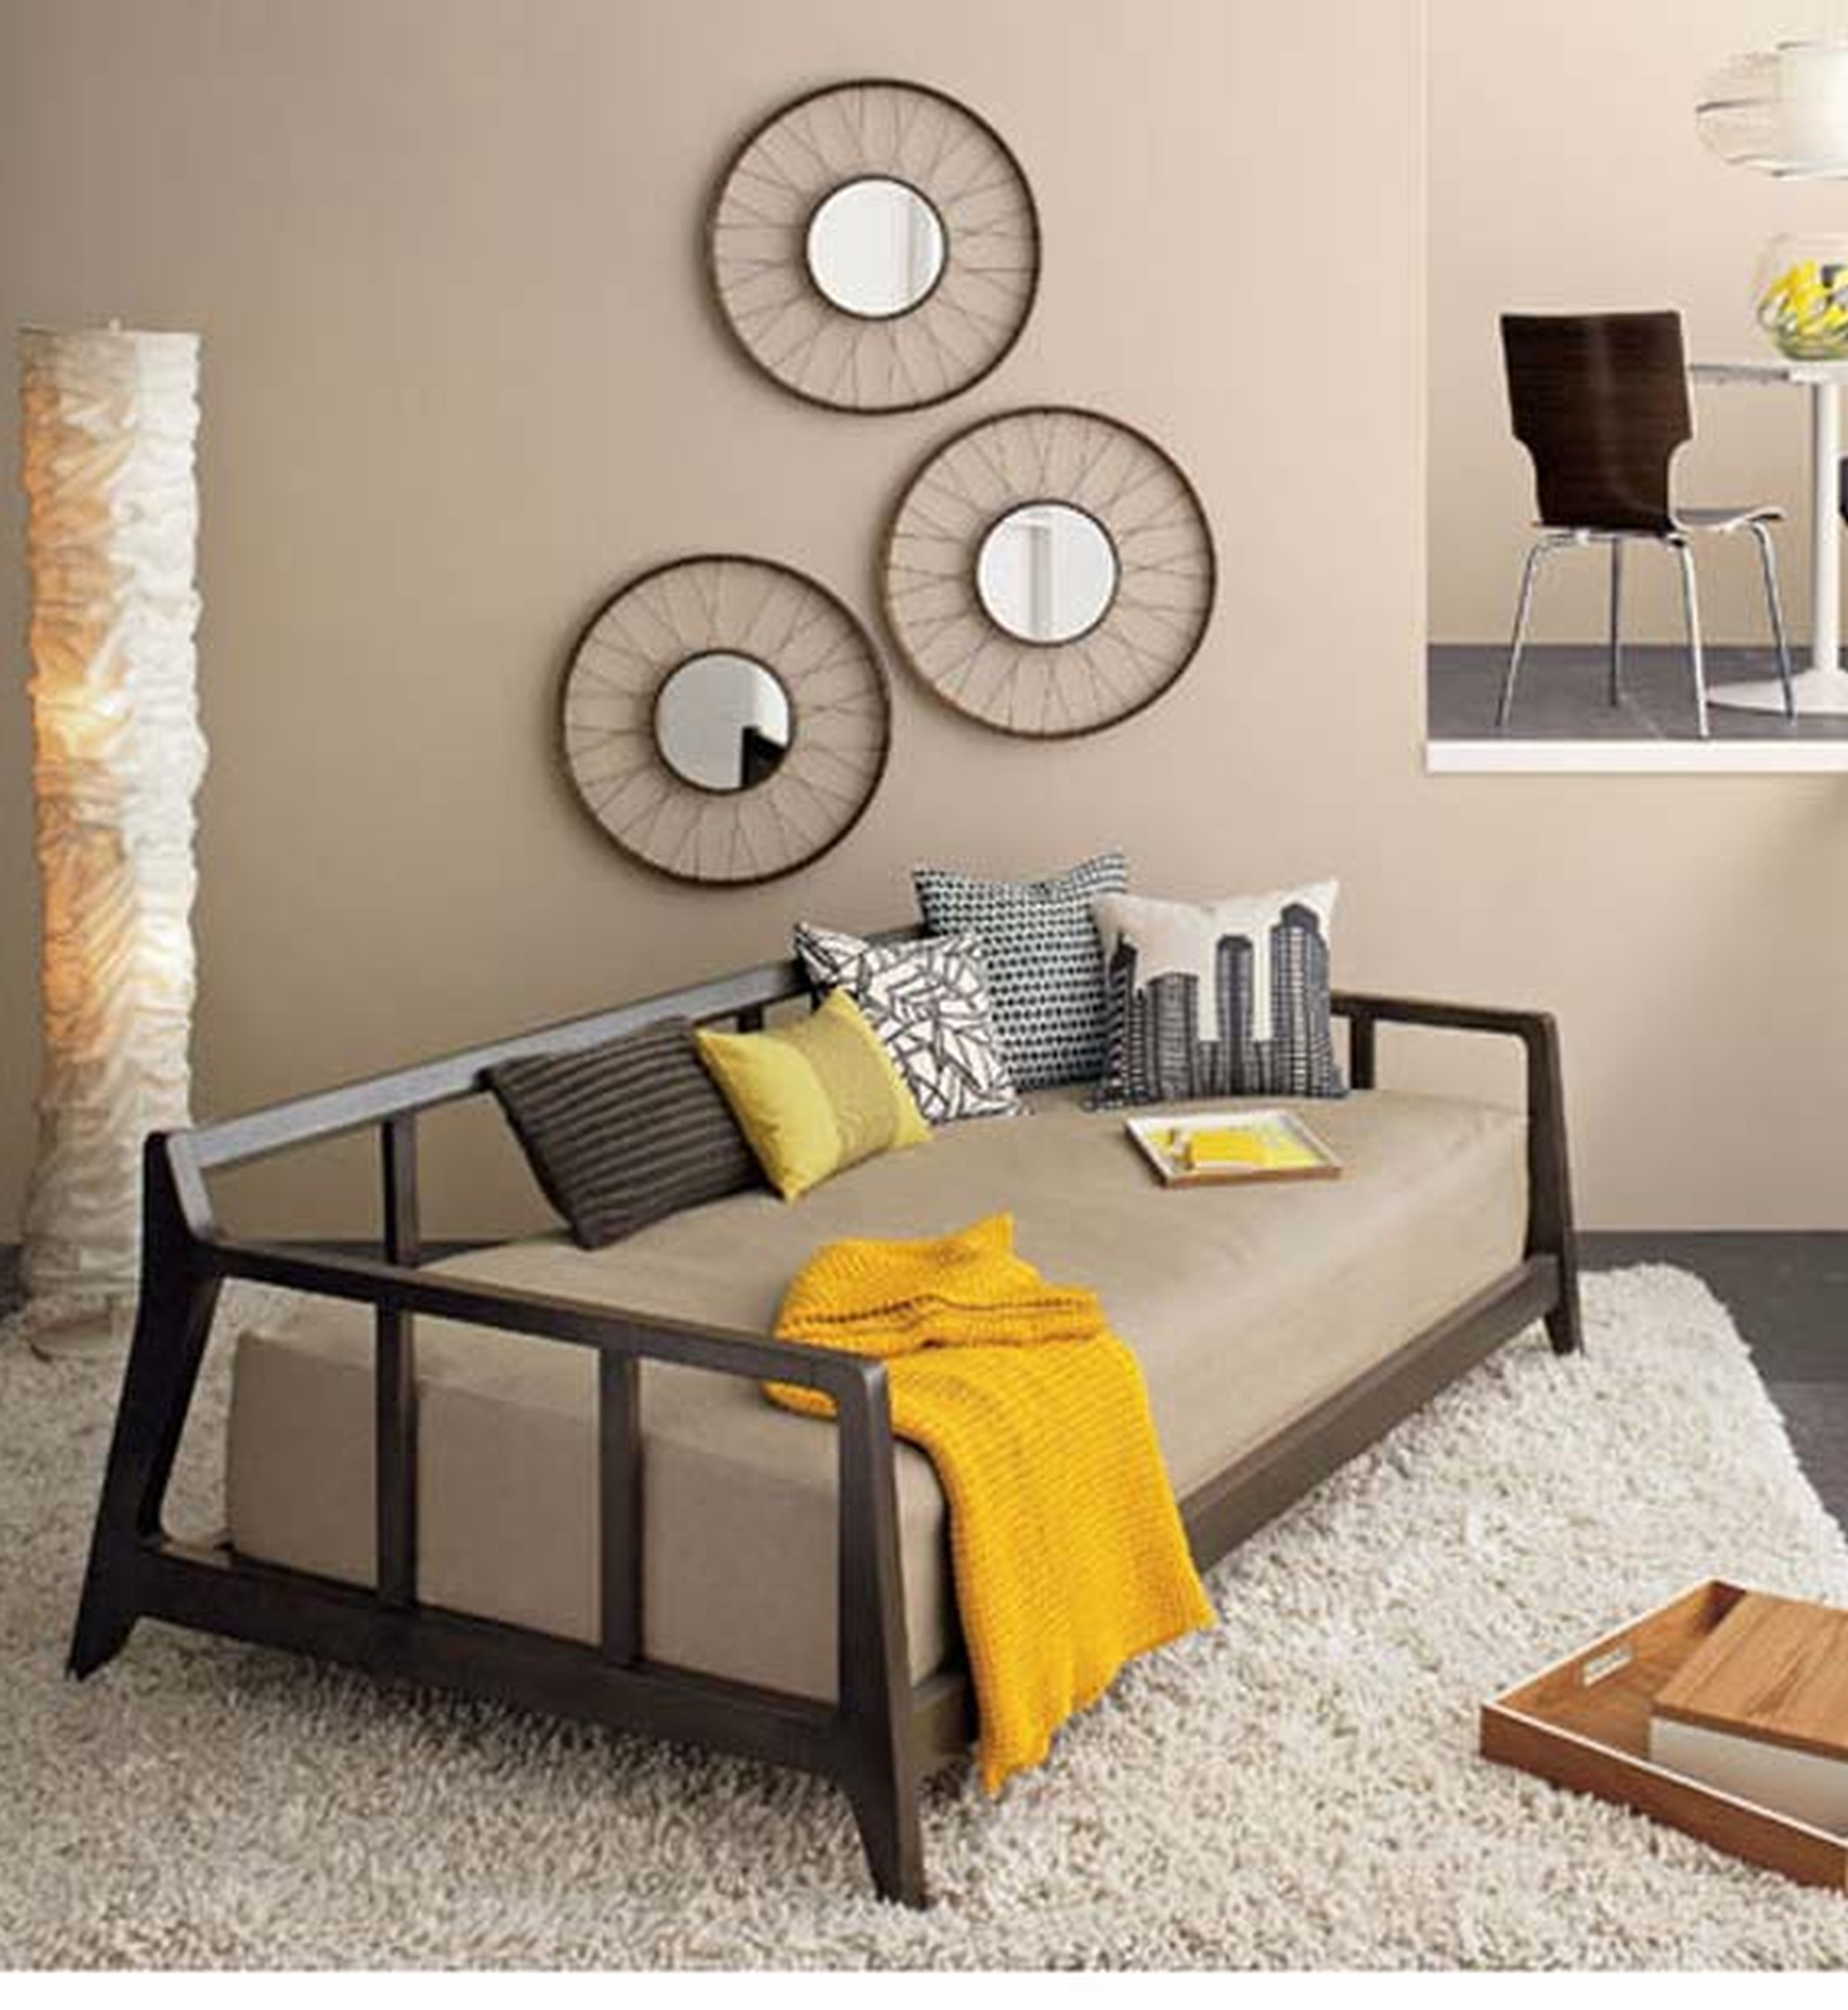 Inexpensive Wall Art intended for Well known Diy Wall Art For Living Room Inexpensive Cheap Decorating Ideas For